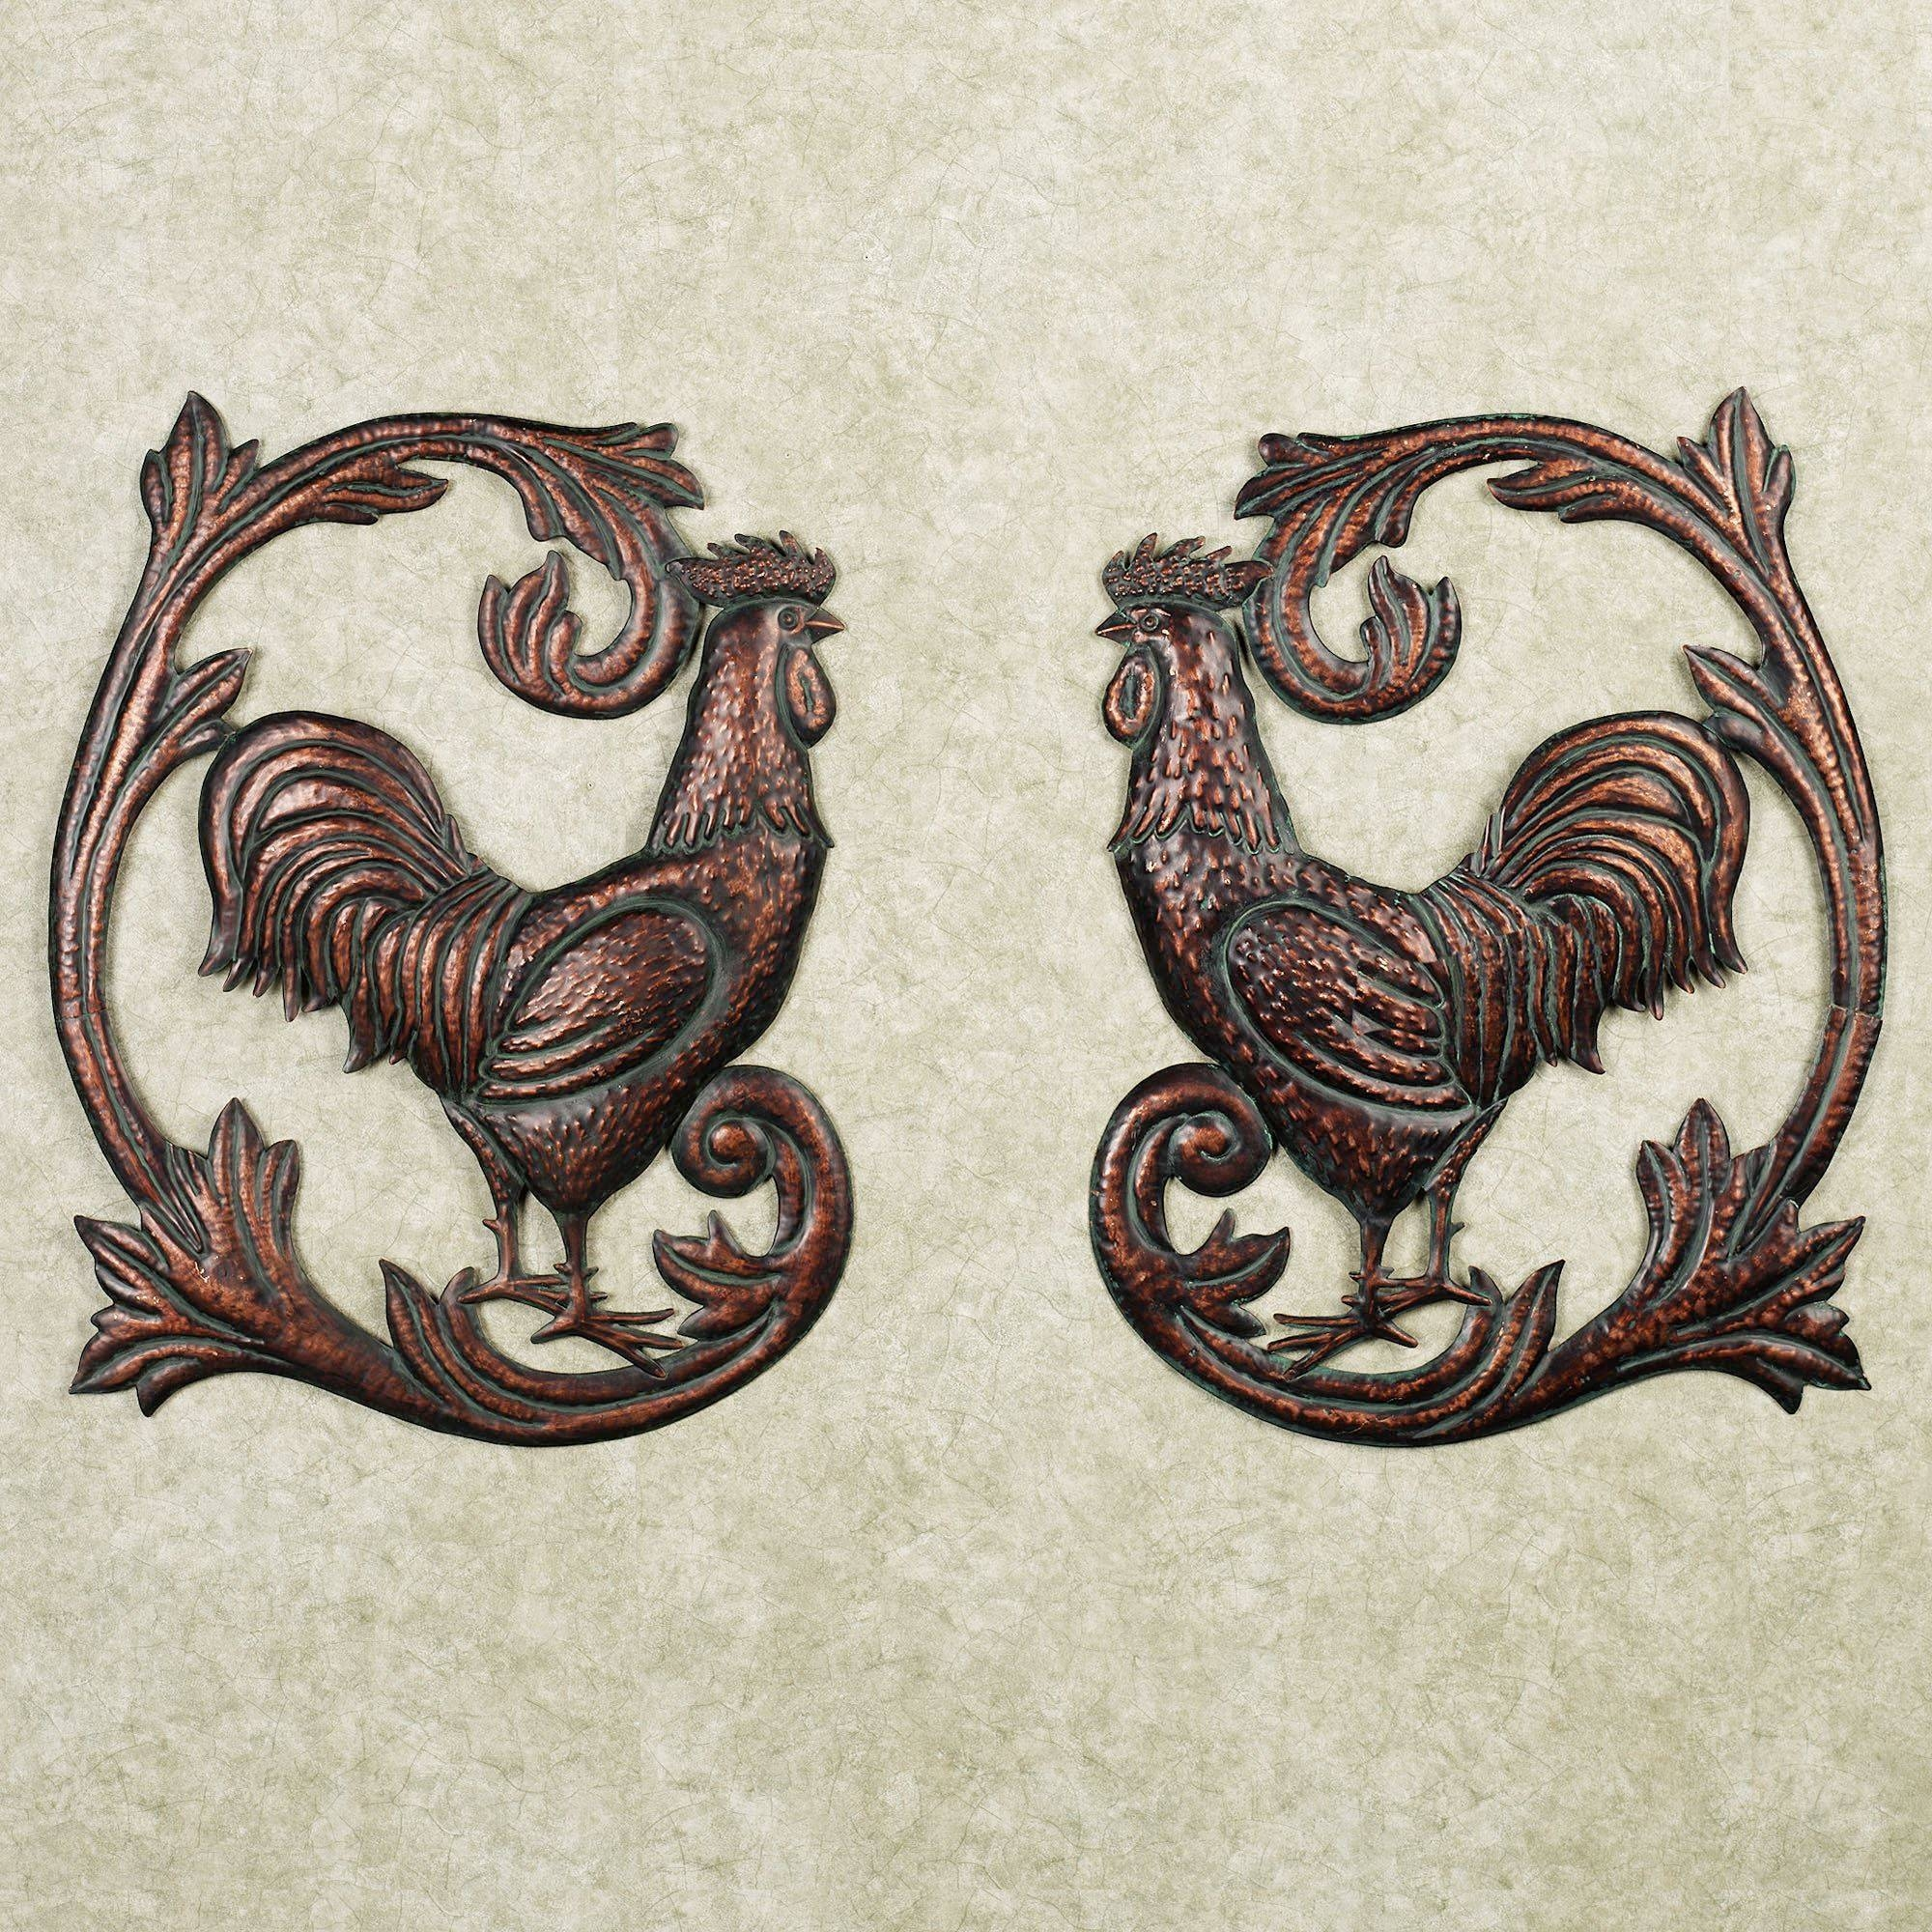 Rooster Wall Art – Popular Items For Rooster Wall Art On Etsy With With Regard To Most Current Metal Rooster Wall Decor (View 6 of 25)